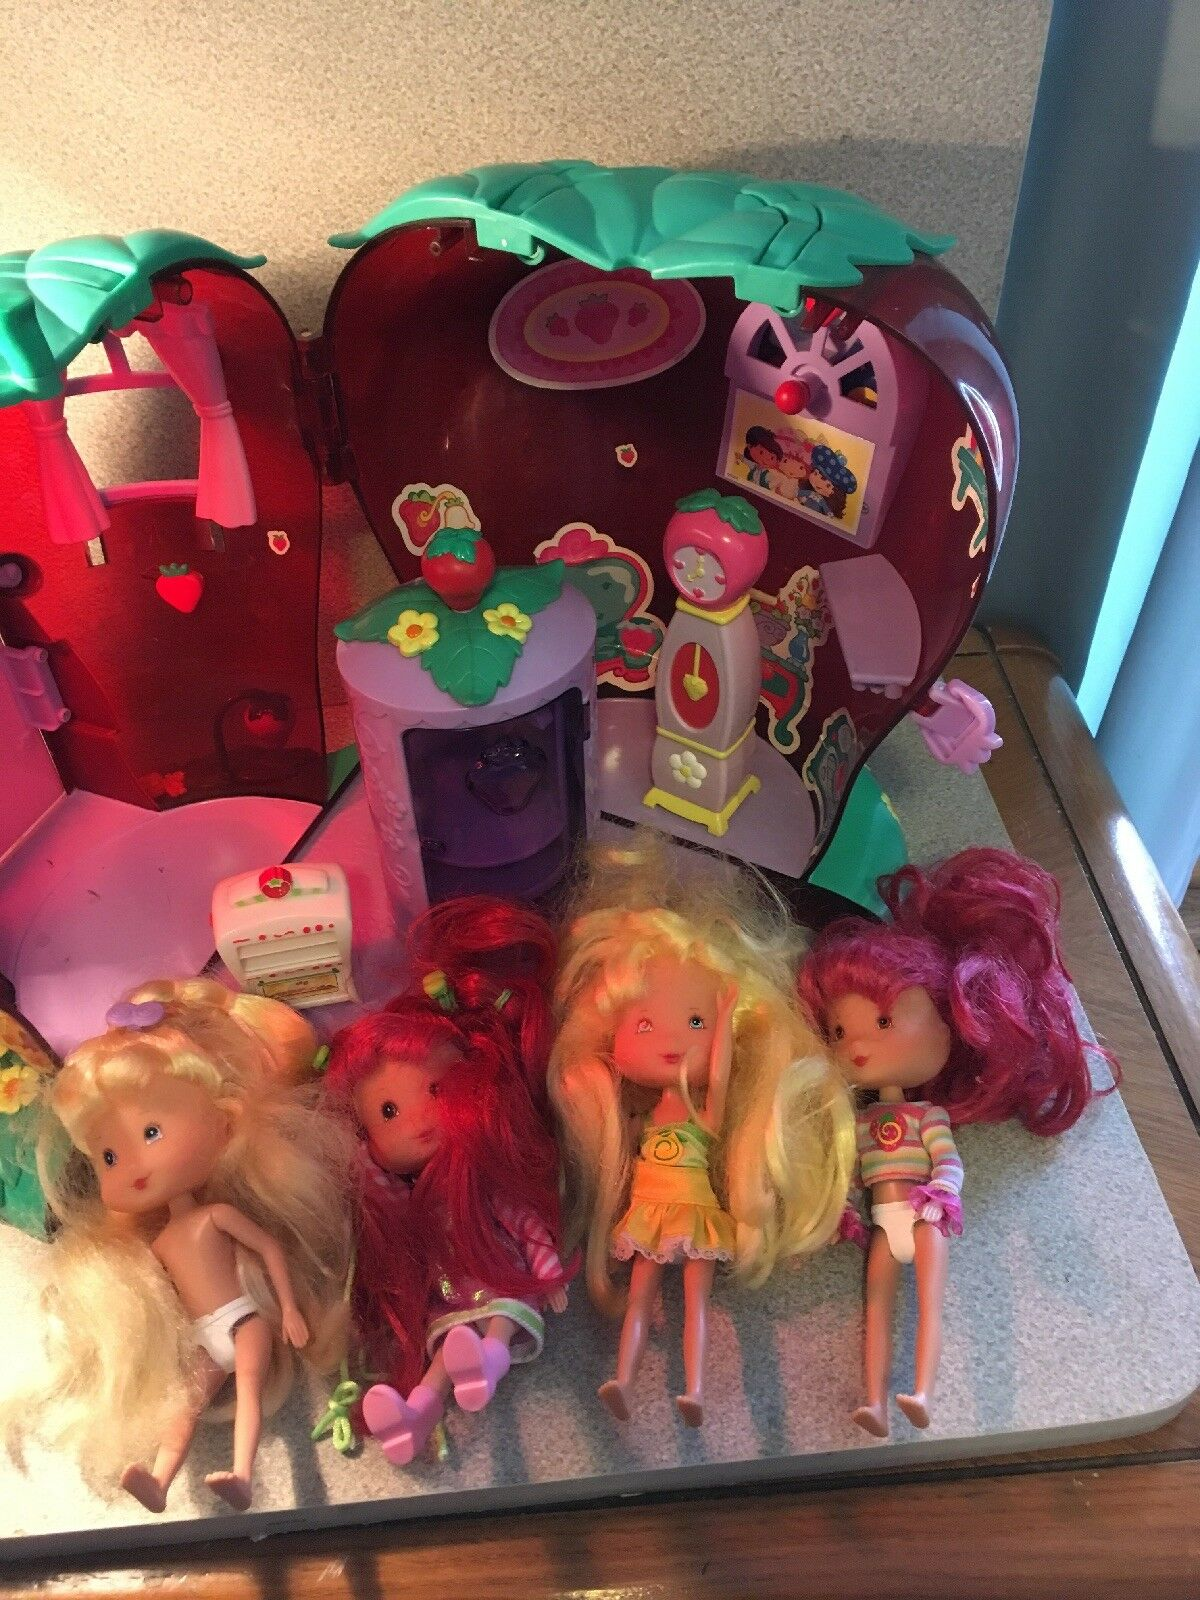 Strawberry Shortcake Berry Home Home Home With Accessories And Four Dolls 0ac4f4